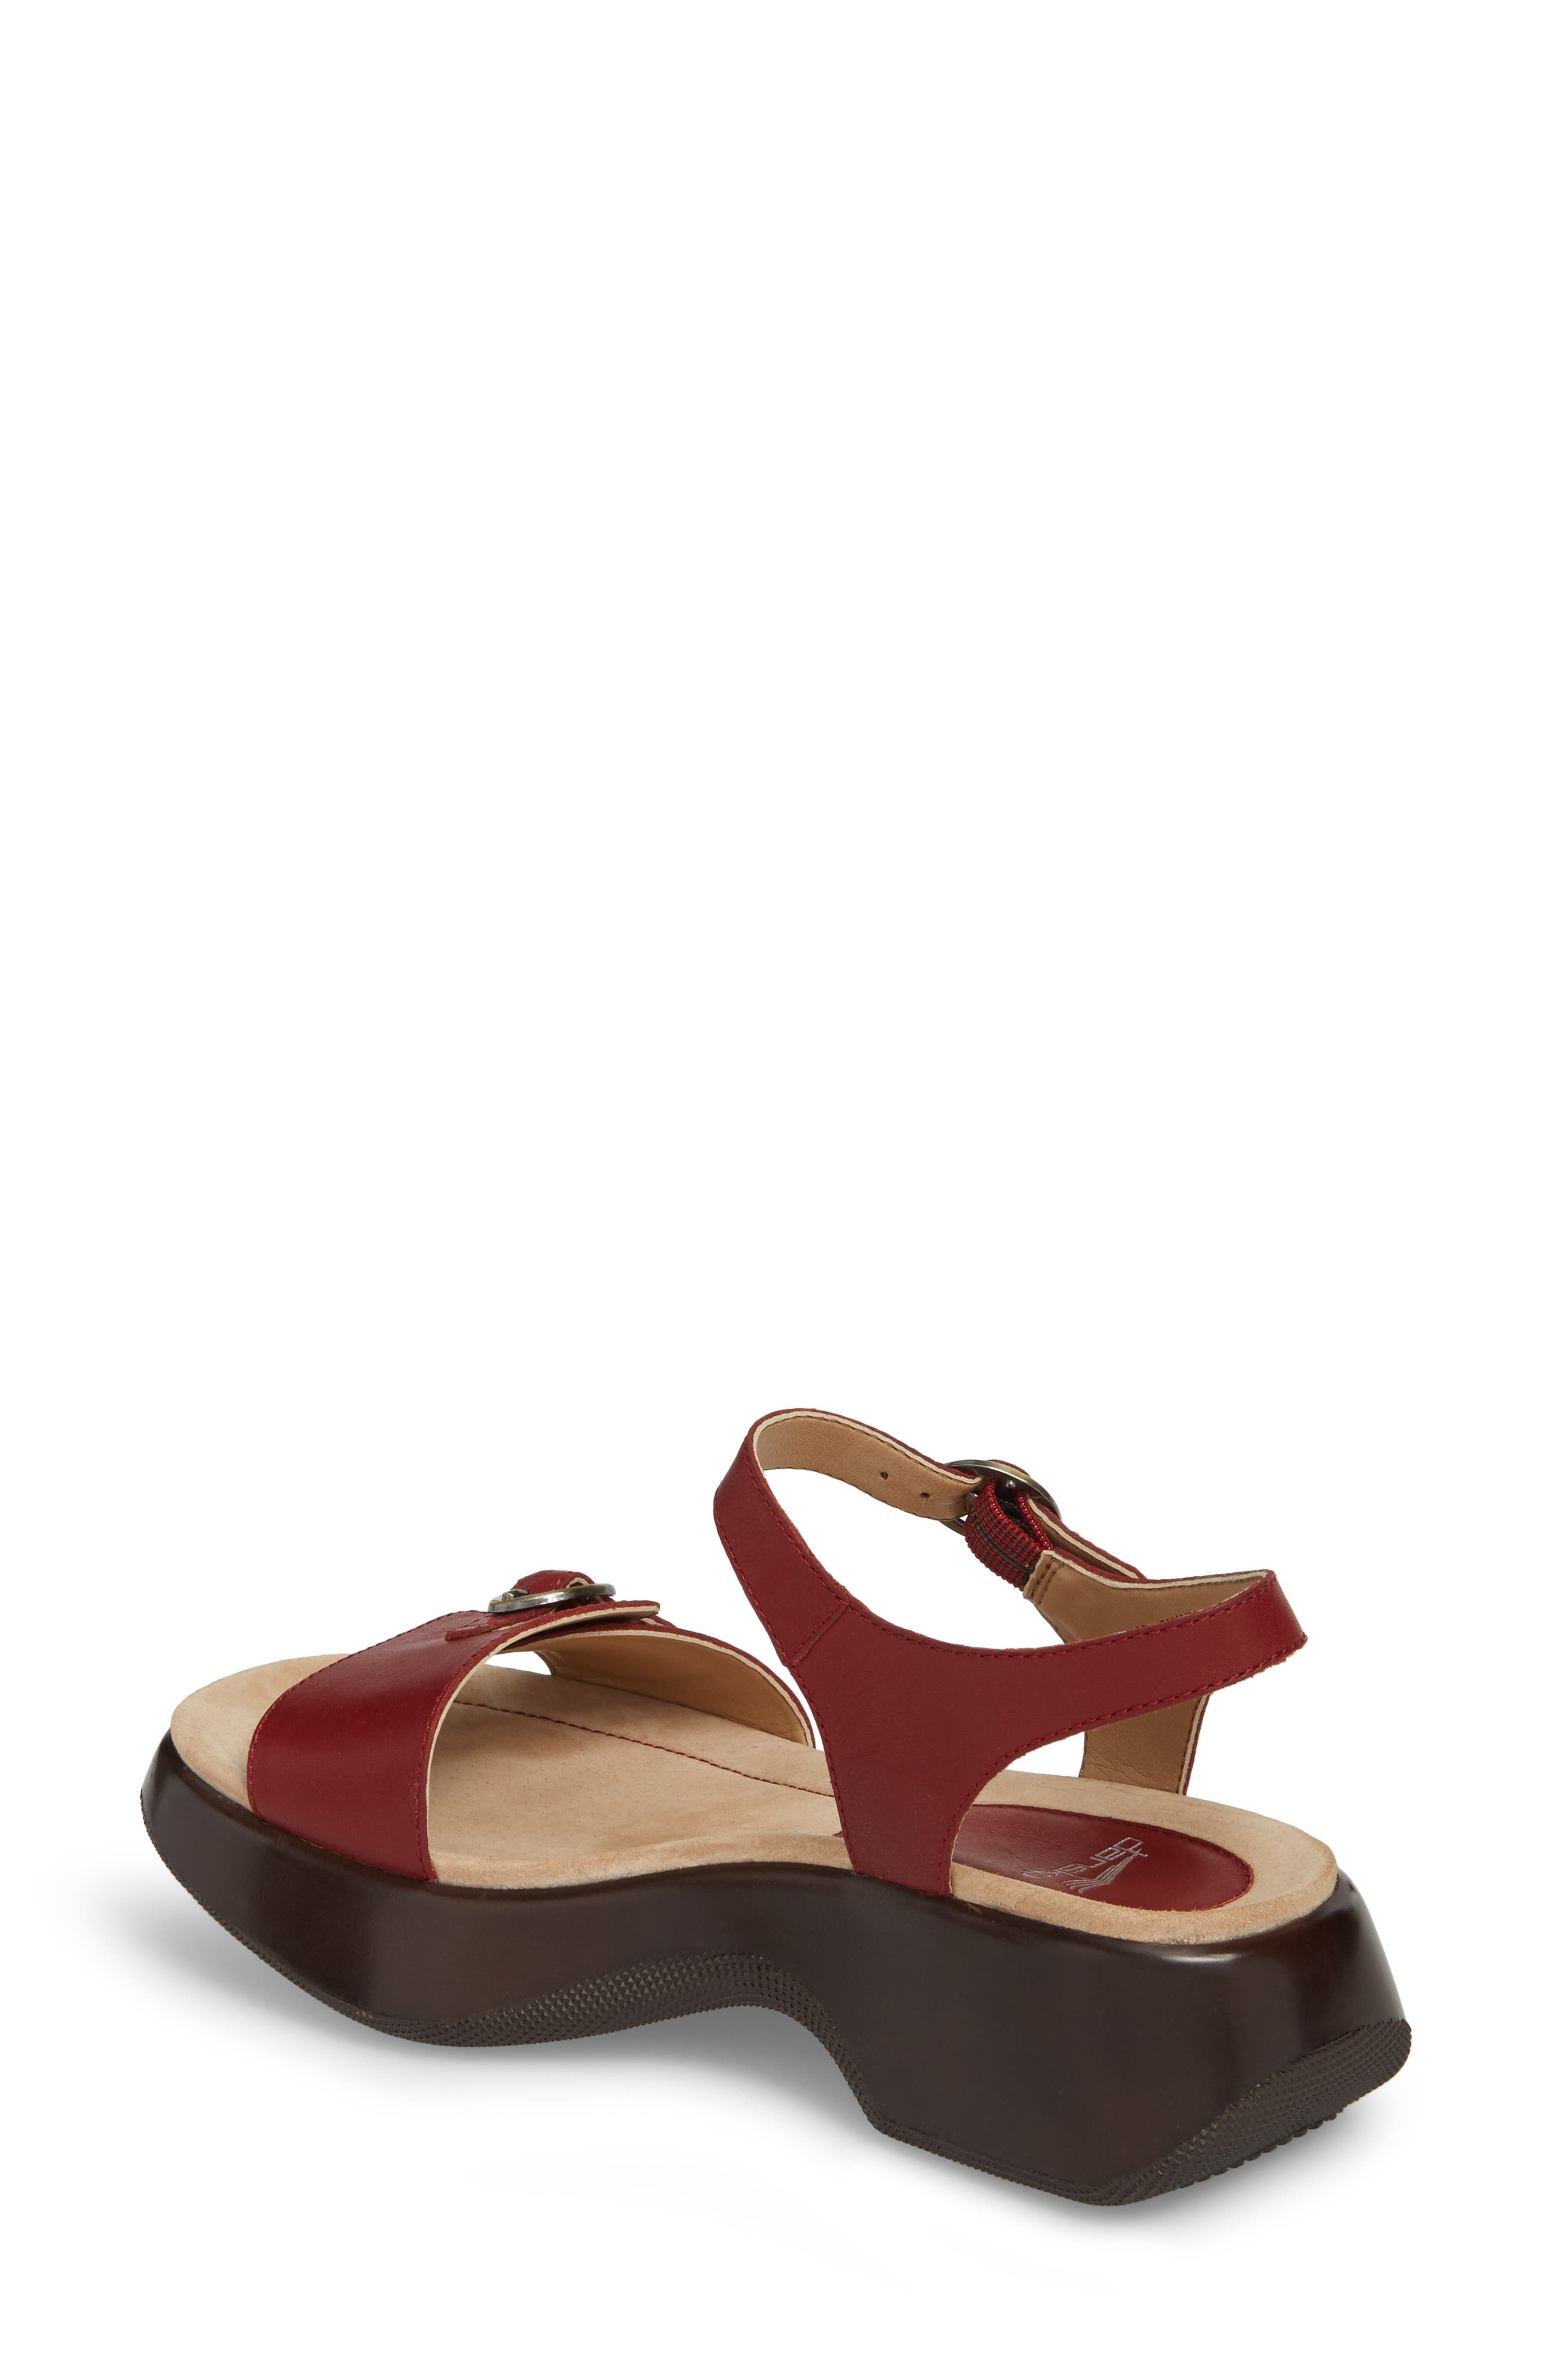 Lynnie Sandal,                             Alternate thumbnail 2, color,                             Red Leather